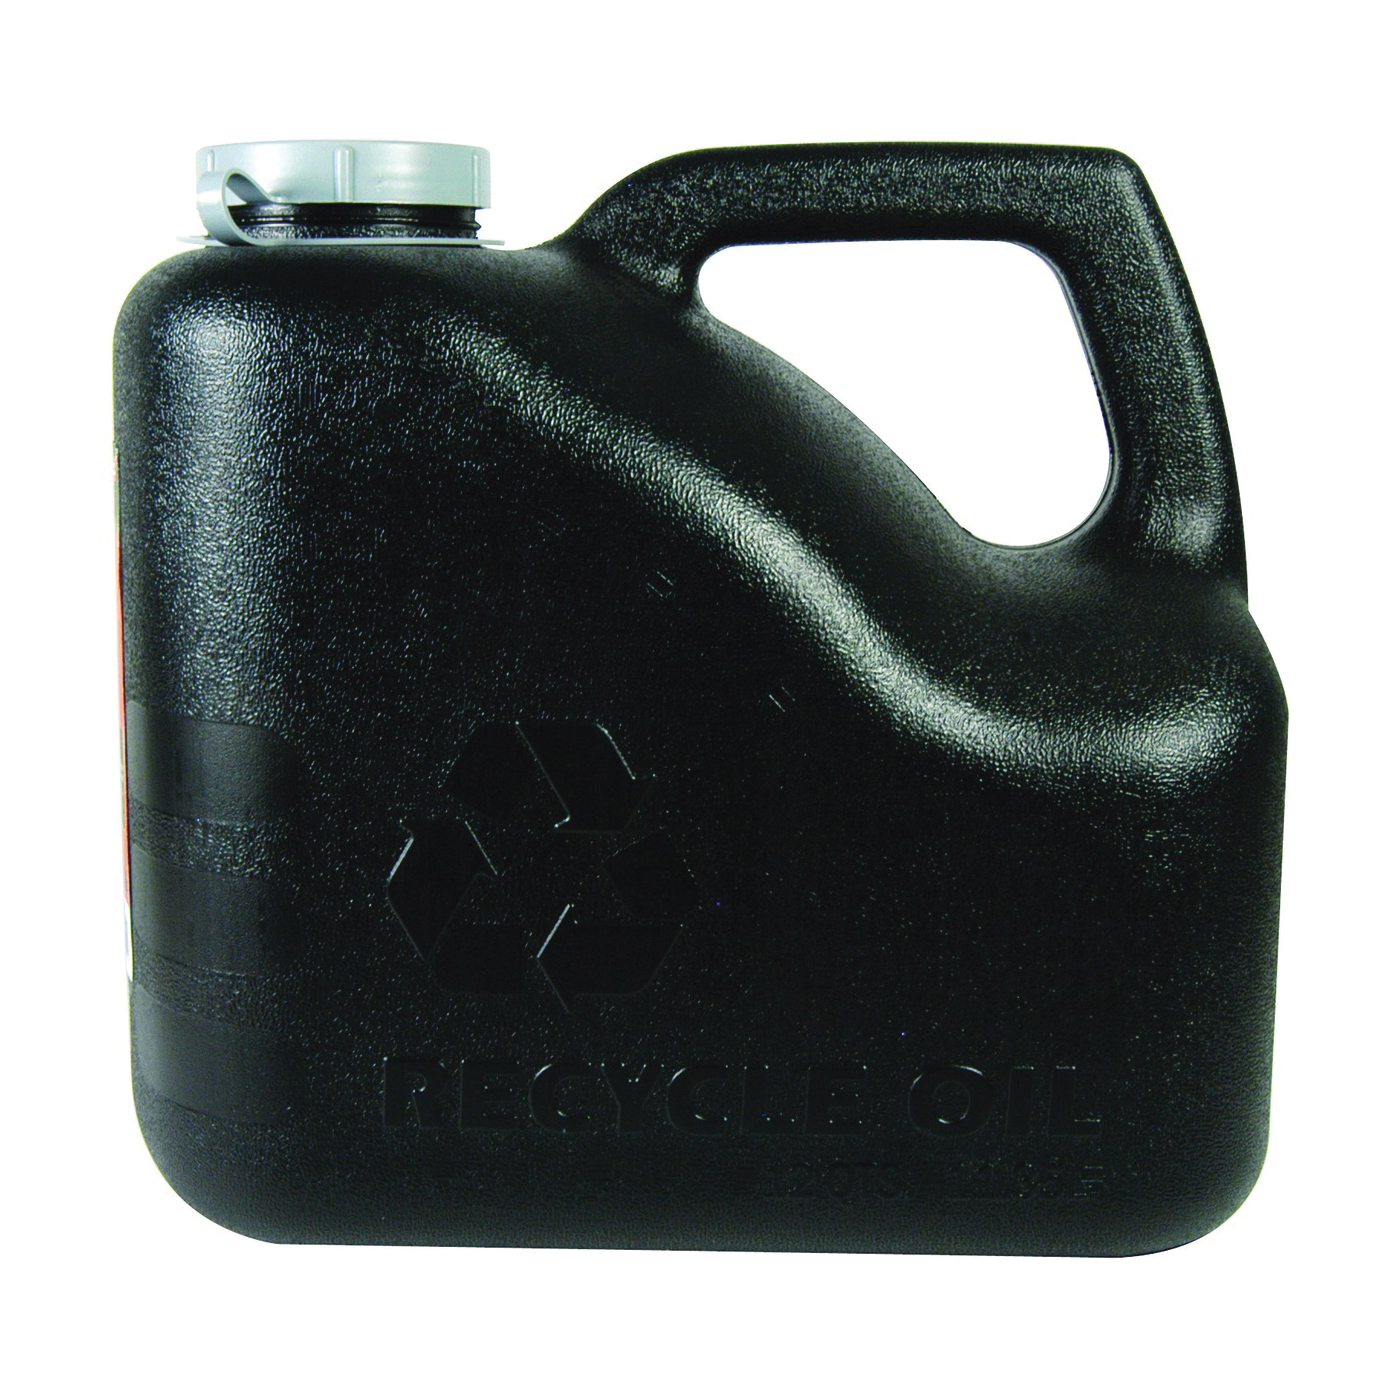 Picture of FloTool 11849 Oil Recycle Can, Black